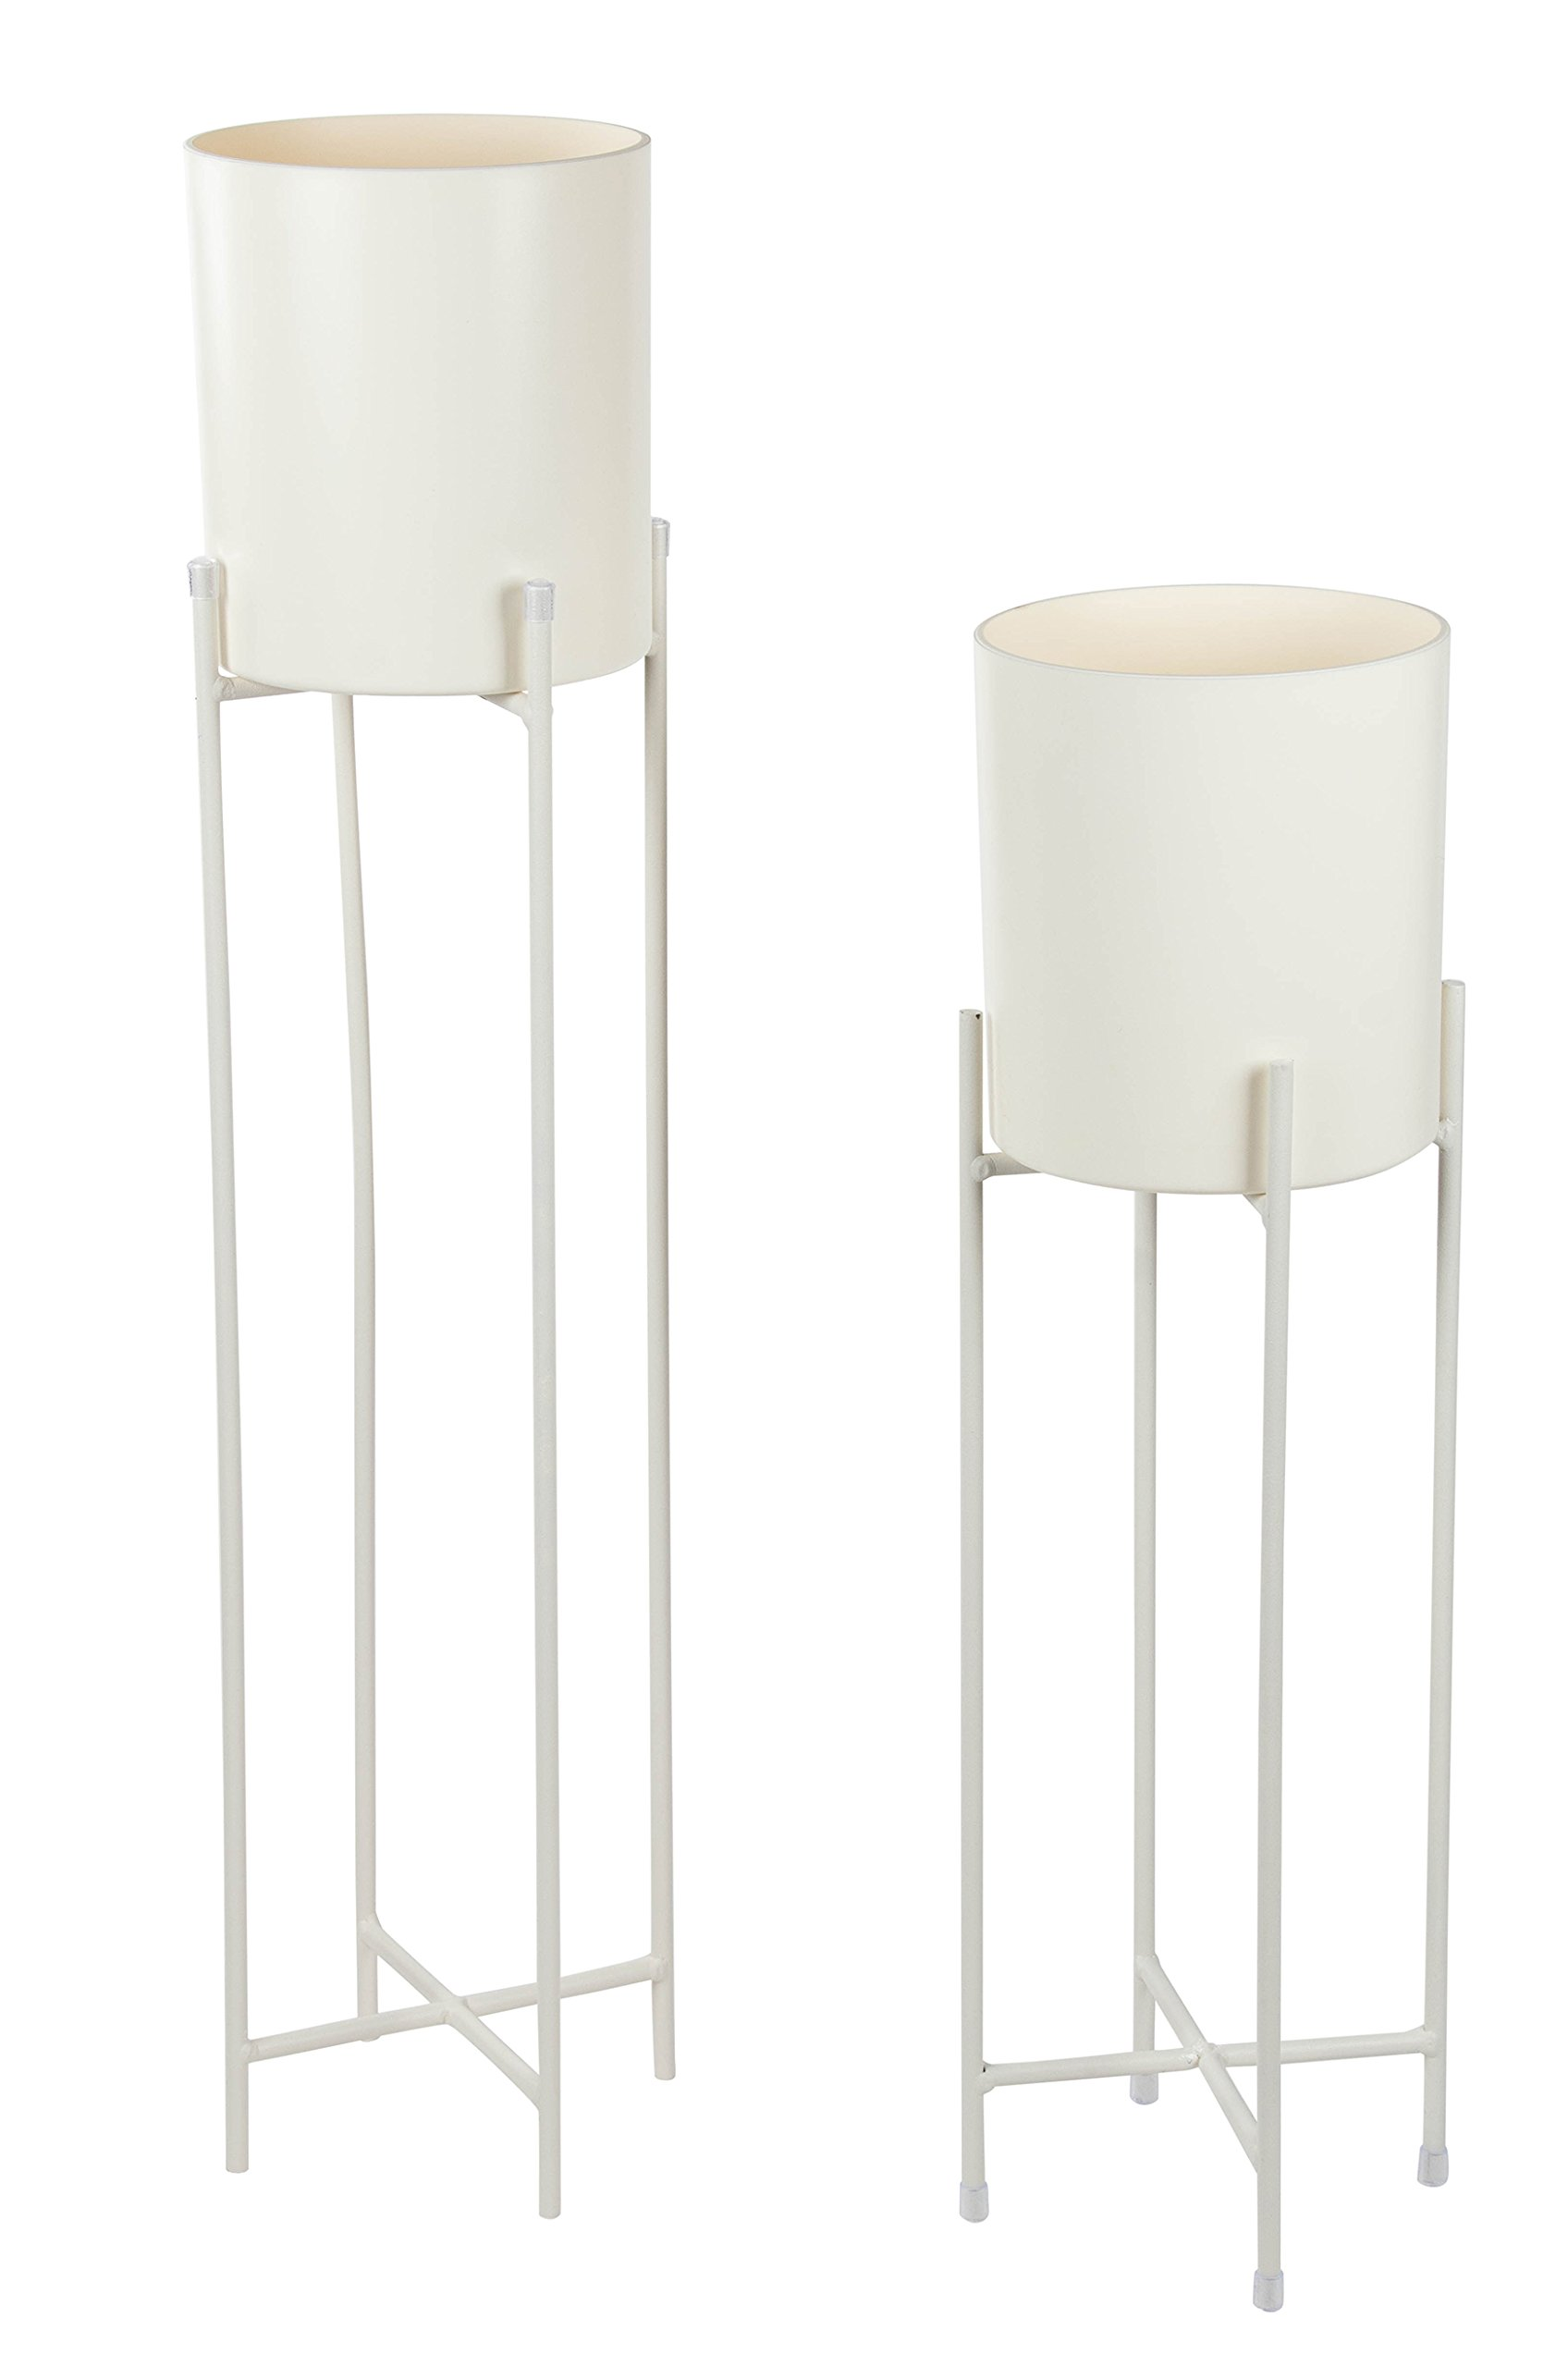 Plant Stand Set - 2-Piece Modern Plastic Planter with Tall Metal Stand - Decorative Standing Flower Succulent Pot Holder, Indoor Outdoor Terrace Patio Home Decor - White, 29.3 and 23 inches Tall by Juvale